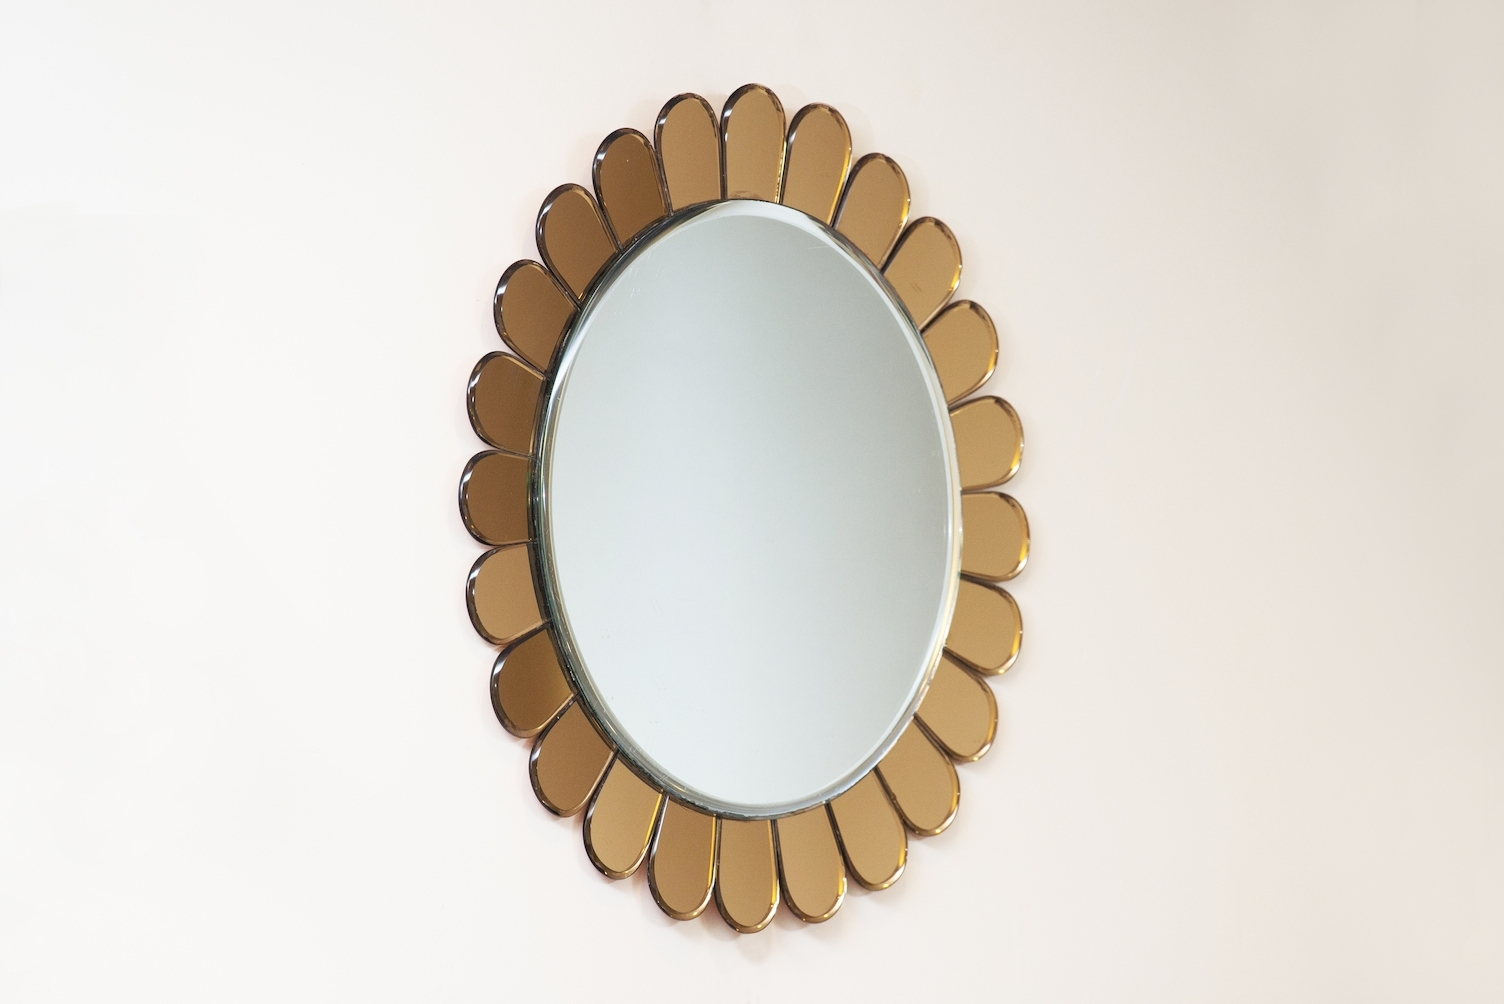 Italian Wall Mirror From Cristal Art, 1950S For Sale At Pamono For 2017 Italian Wall Art For Sale (Gallery 6 of 15)